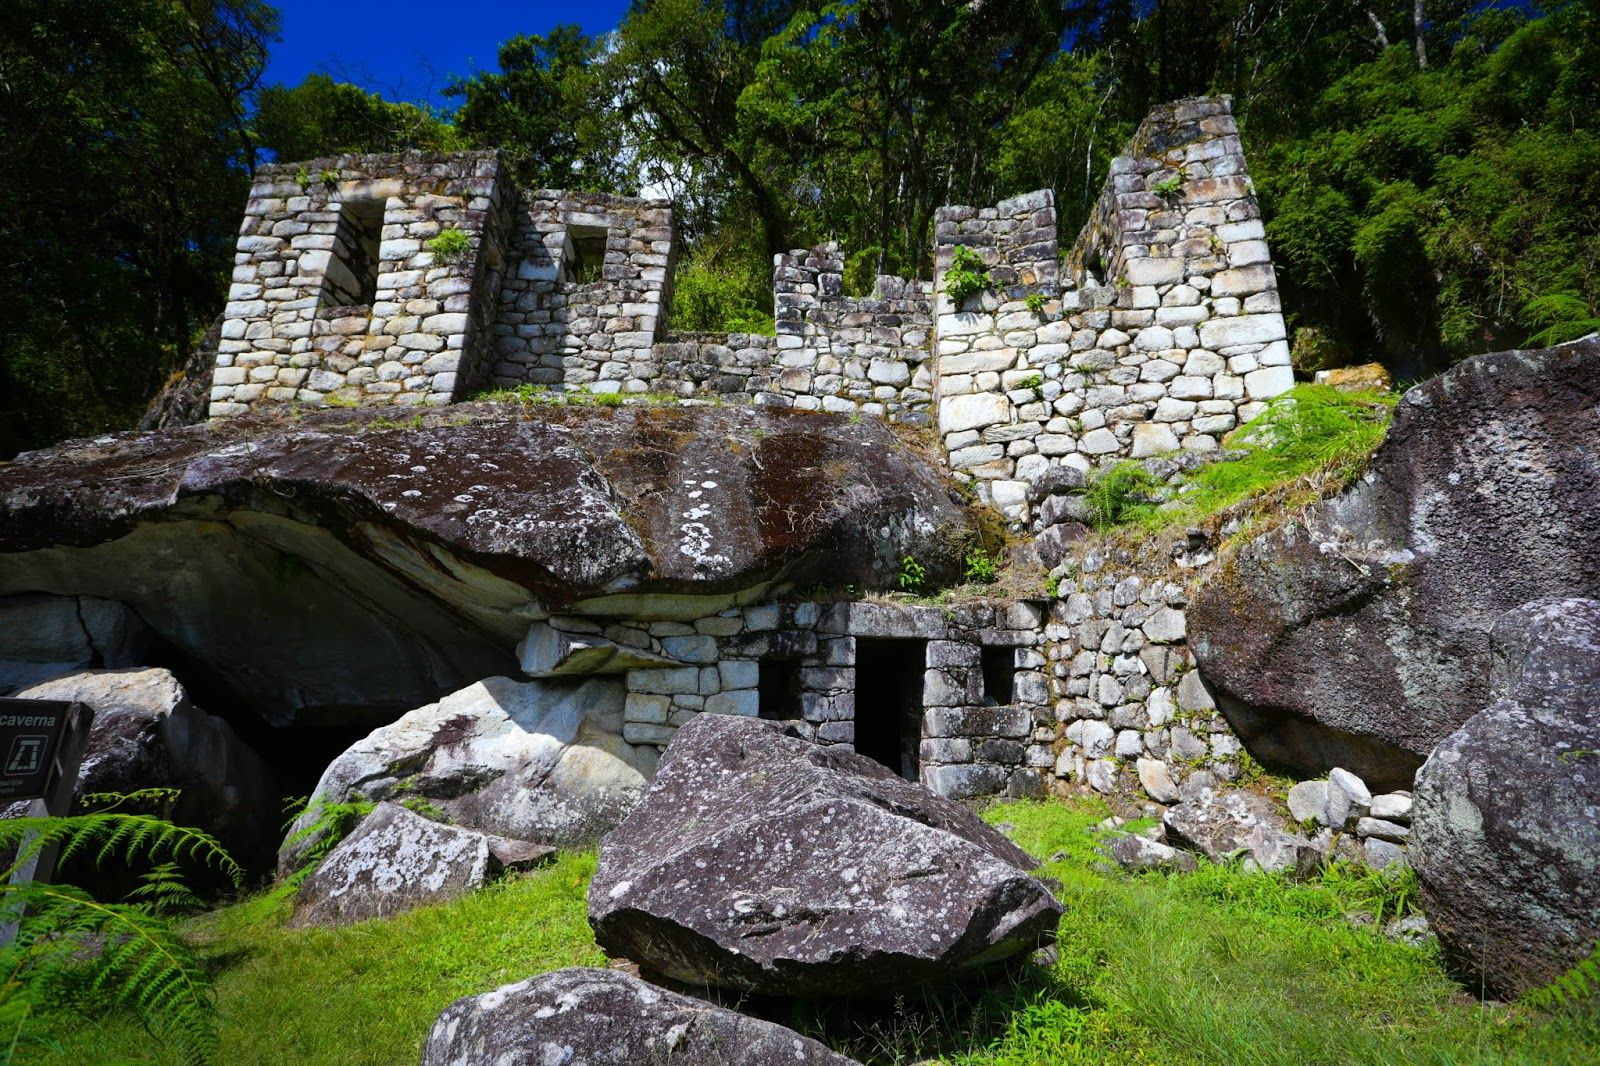 What Most People Lose When Visiting Machu Picchu